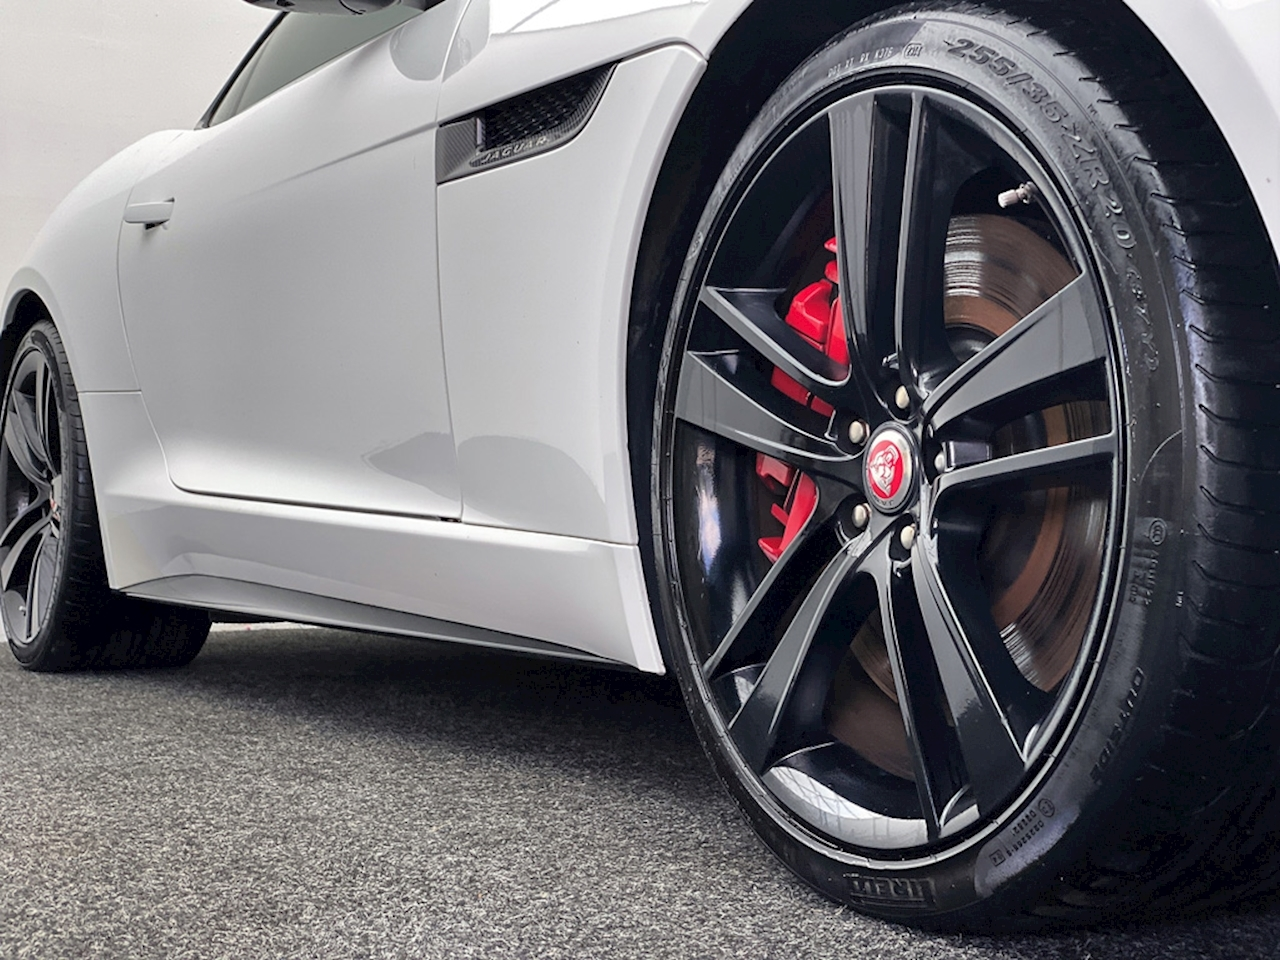 Jaguar F-Type R Coupe 5.0 Automatic Petrol